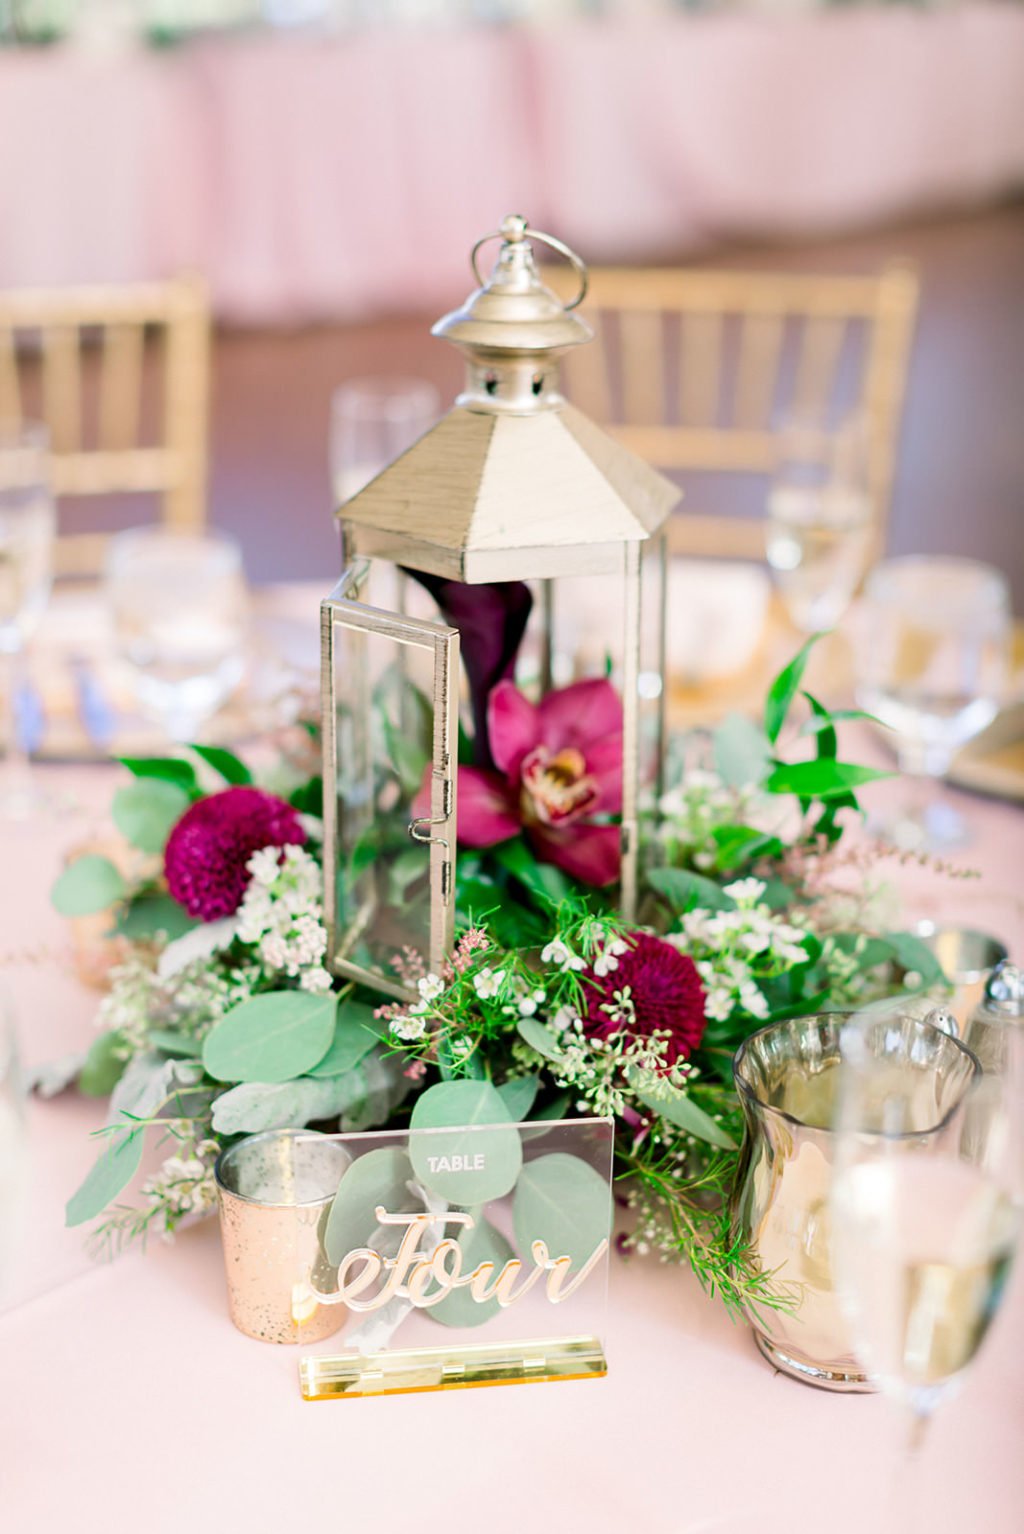 Rustic Elegant Wedding Ballroom Reception Venue, Small Brushed Gold Lantern with Organic Eucalyptus, Greenery and Maroon Floral Arrangement, Clear Acrylic with Gold Calligraphy Table Number Sign | Tampa Bay Wedding Photographer Shauna and Jordon Photography